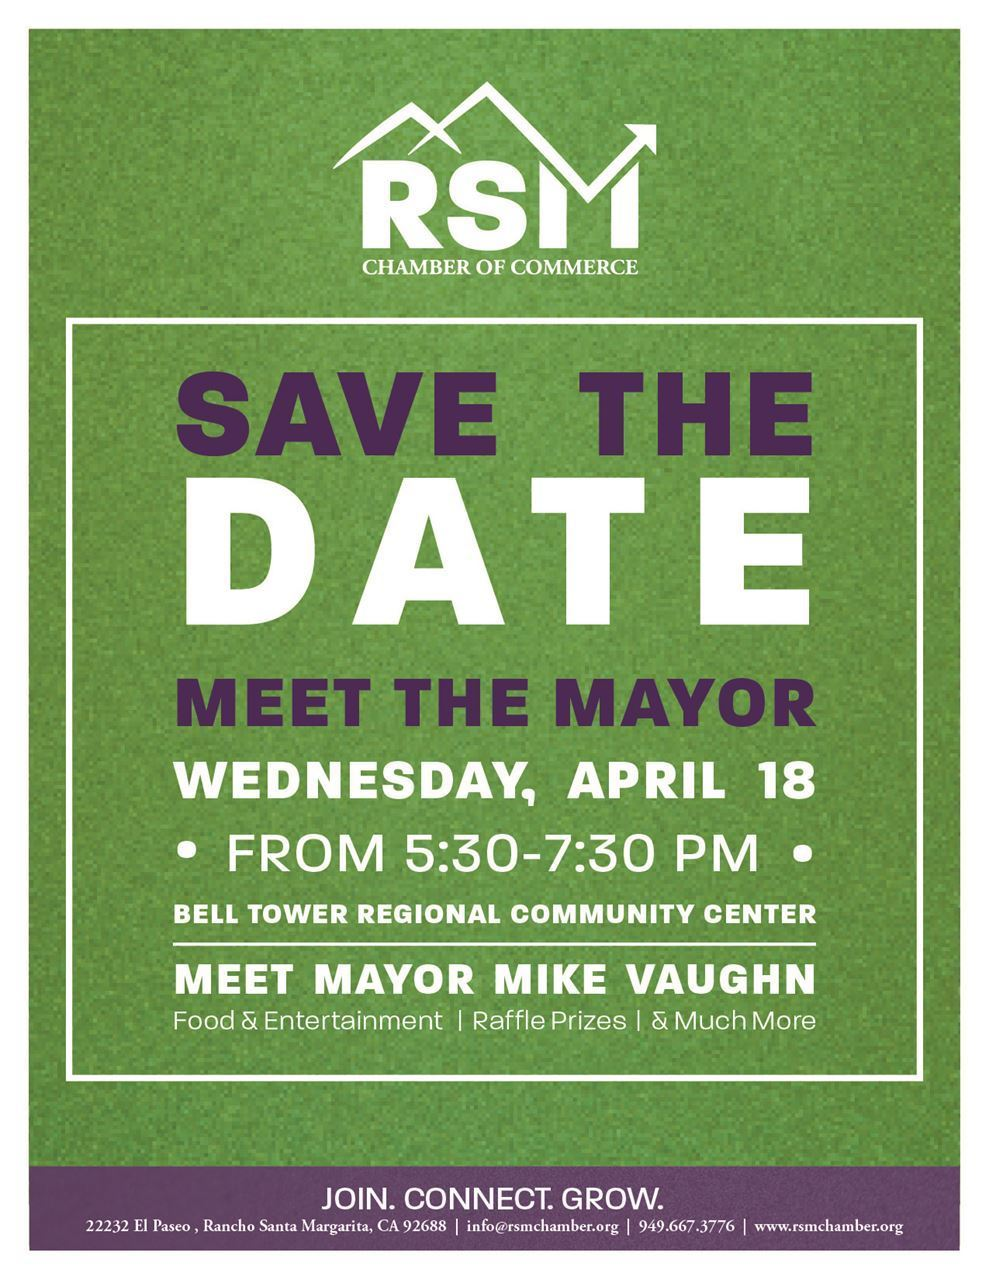 SAVE THE DATE_MEET THE MAYOR graphic